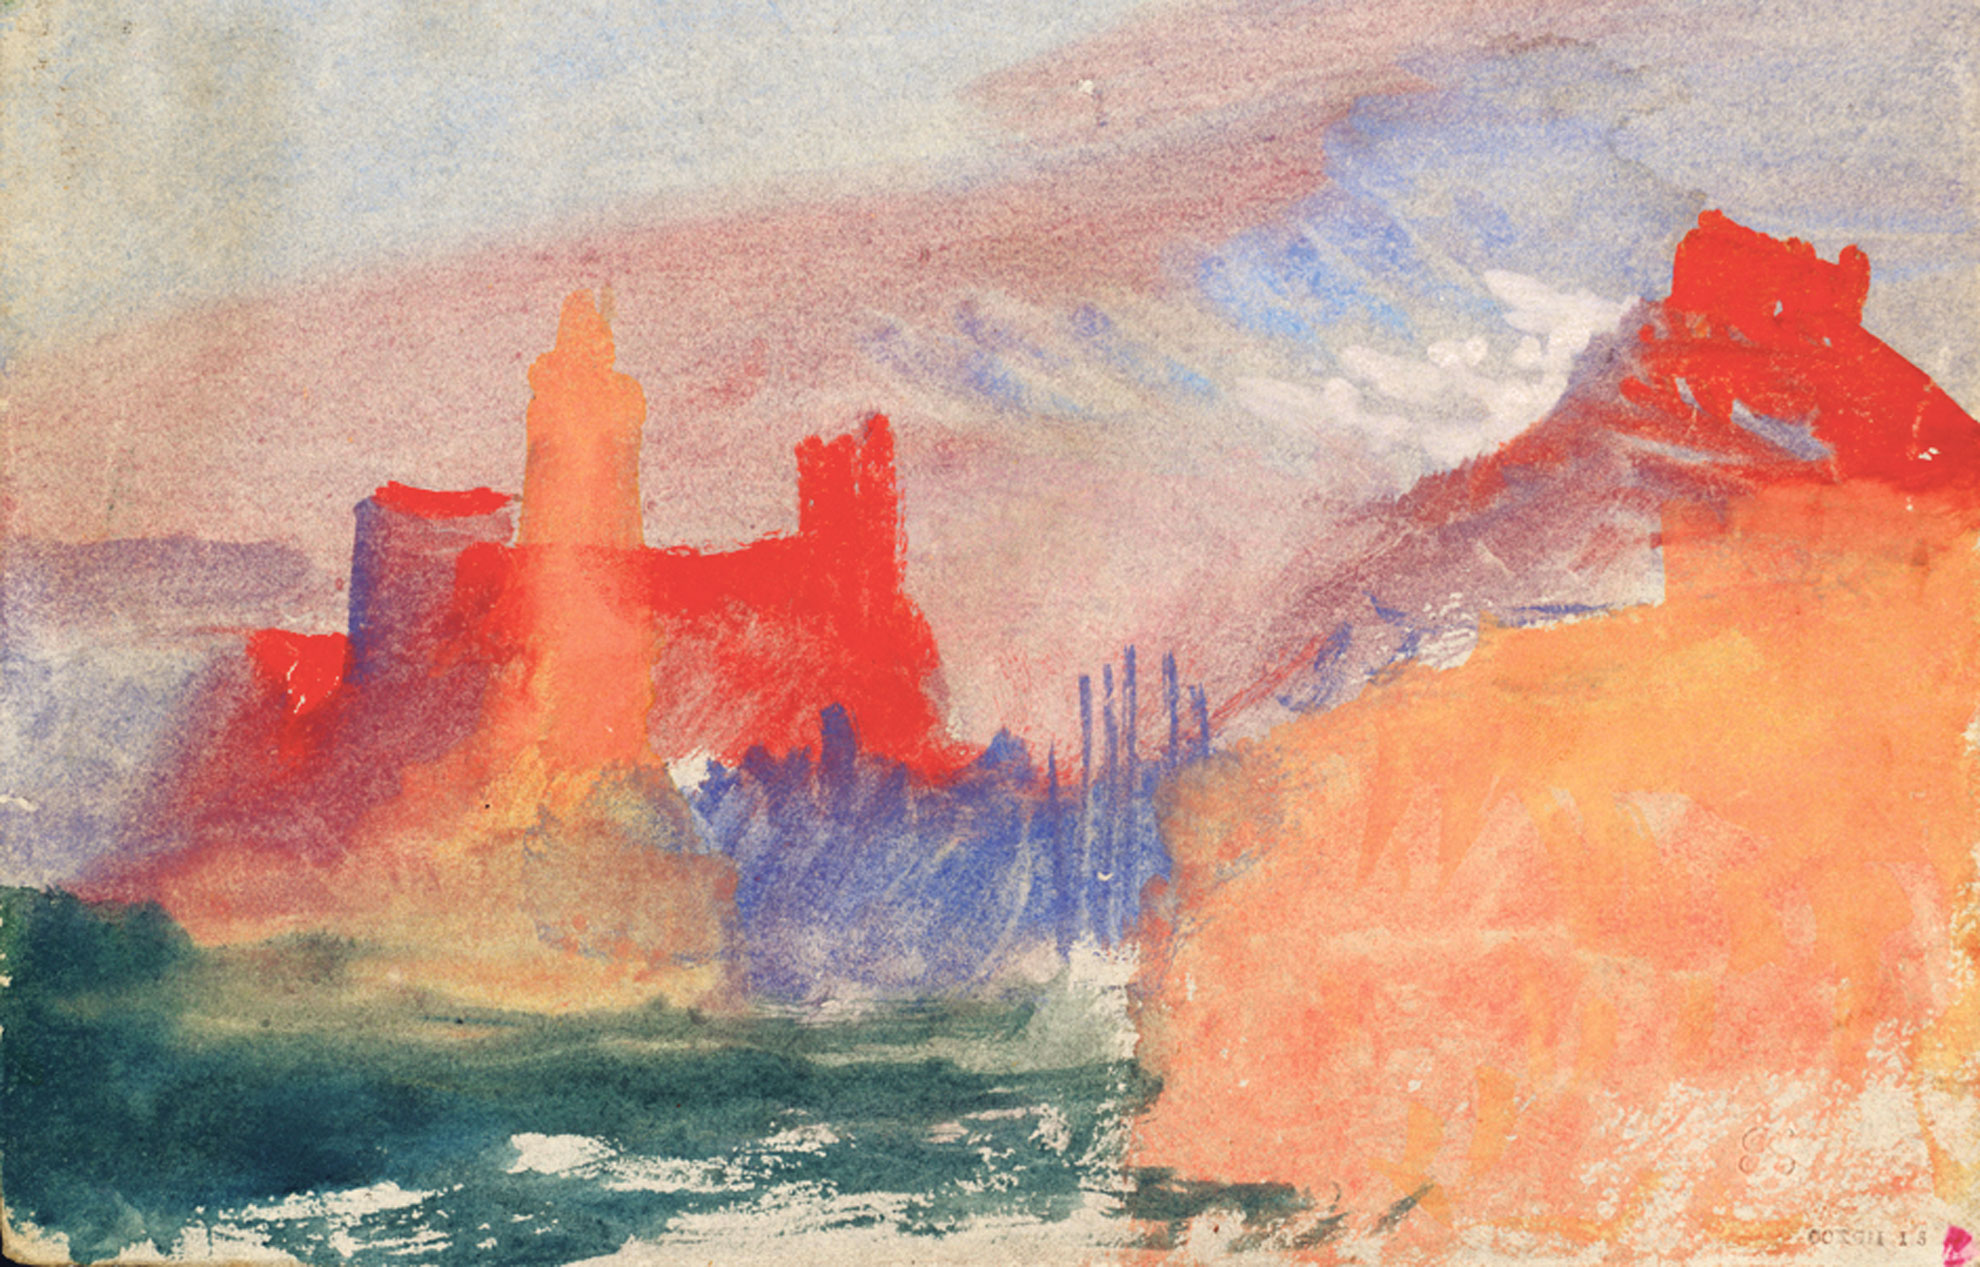 Les-Tours-vermillon-vers-1838-de-William-Turner-etude-a-Antibes.